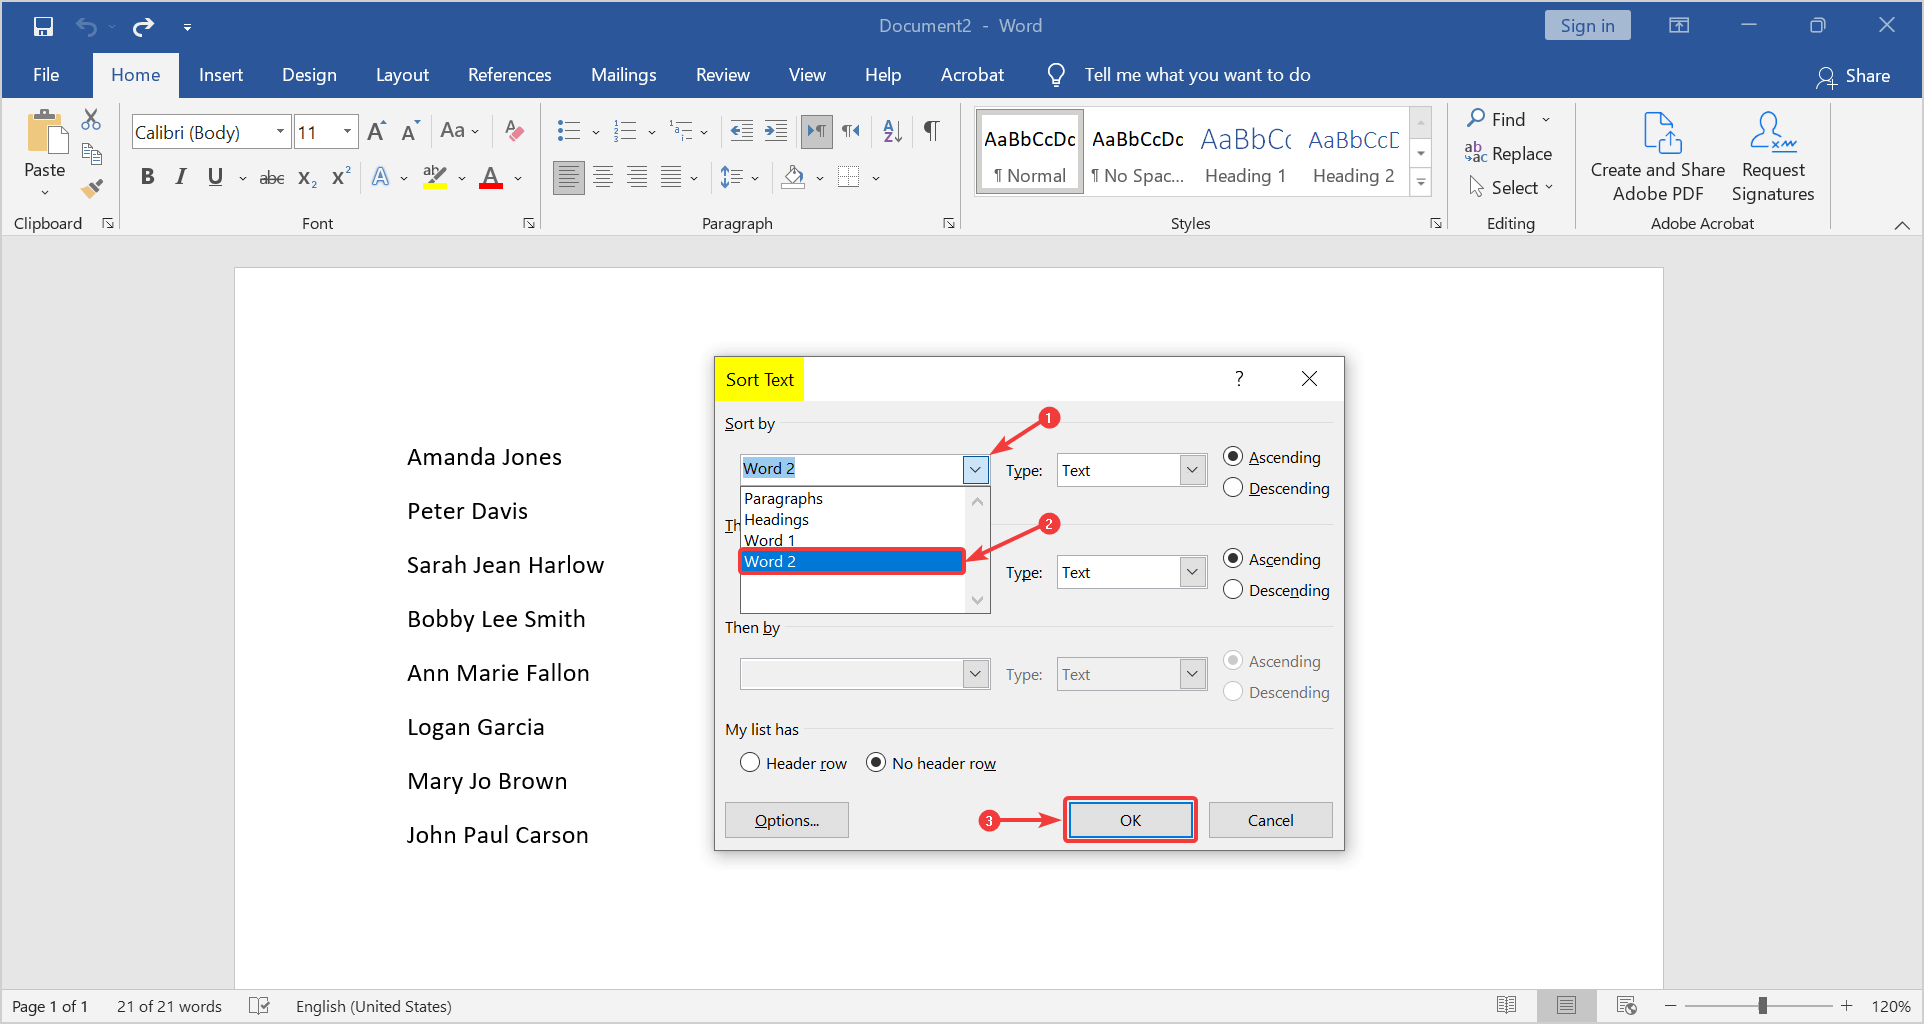 how to arrange names in alphabetical order in word. Surnames first in sort text box.